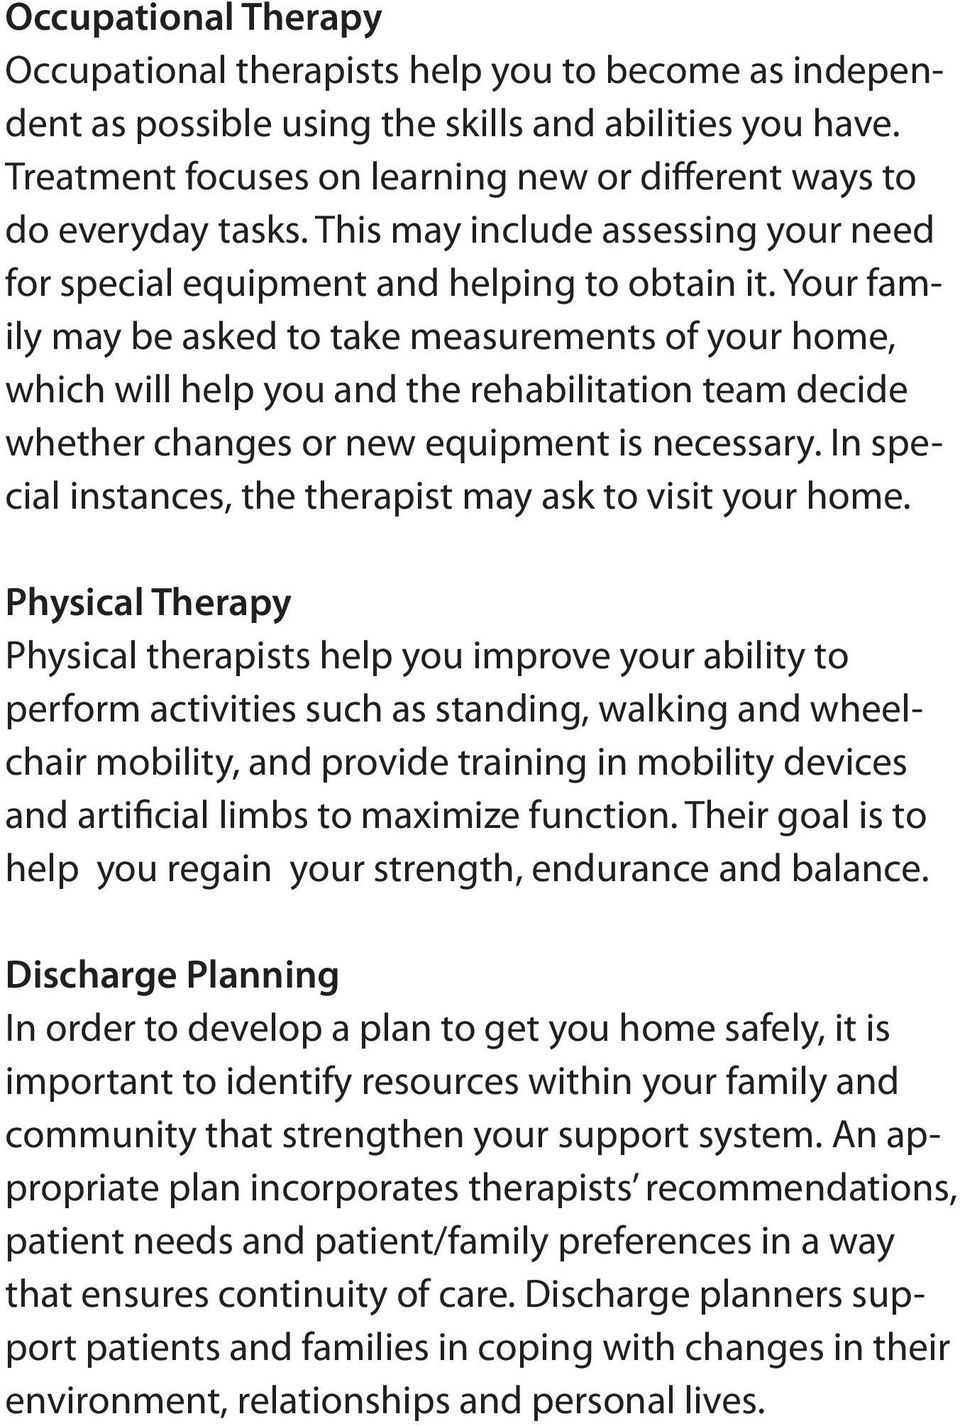 Your family may be asked to take measurements of your home, which will help you and the rehabilitation team decide whether changes or new equipment is necessary.